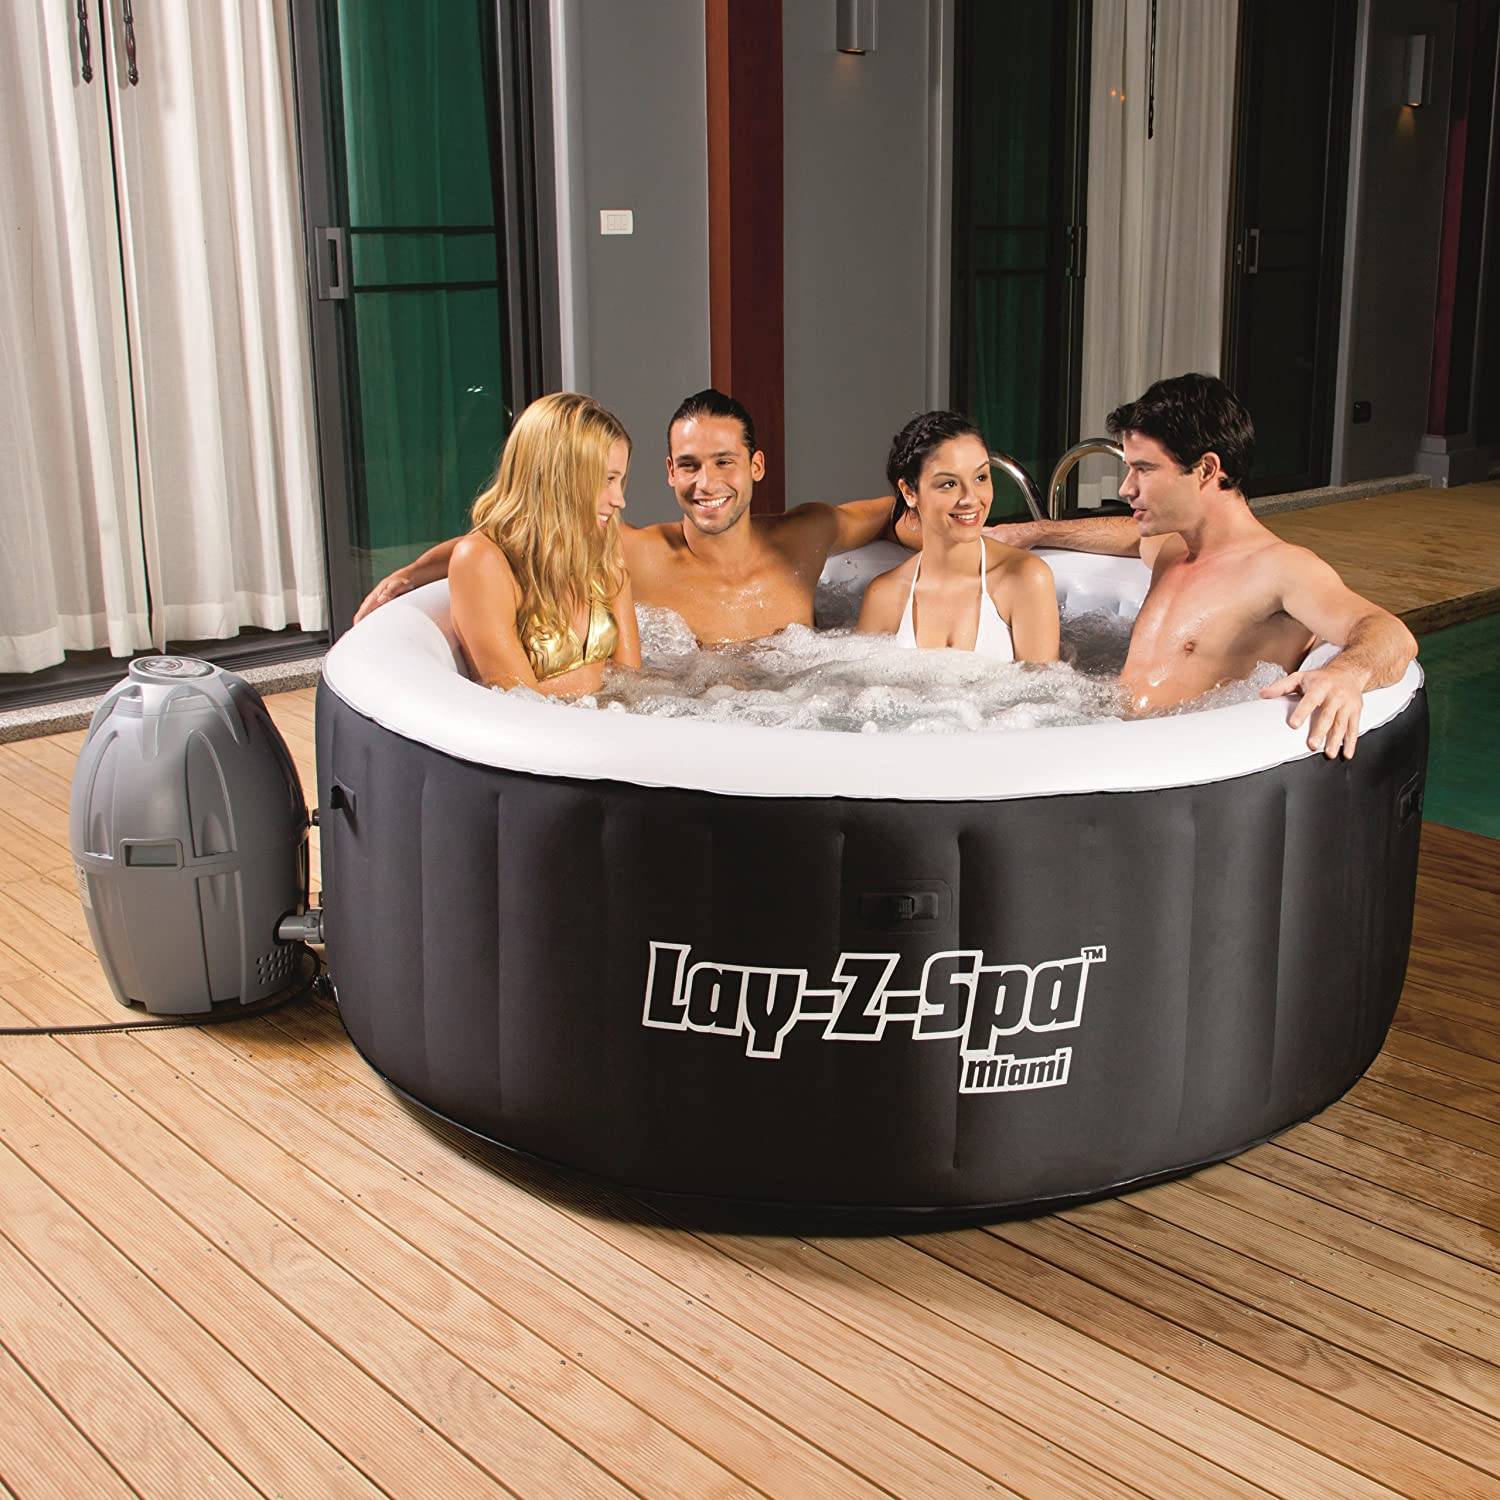 This outdoor hot tub is excellent to use.